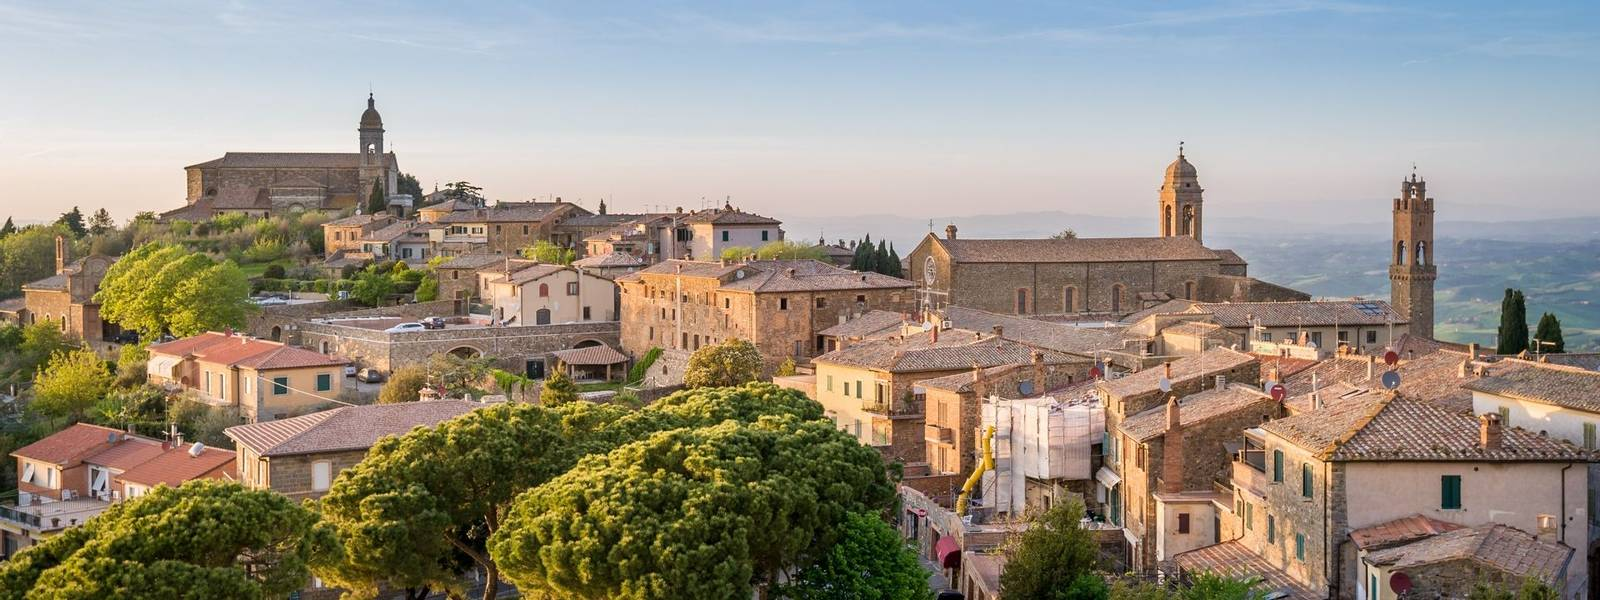 Montalcino old town at the beautiful sunset light. Travel Toscana landscapes, Italy.